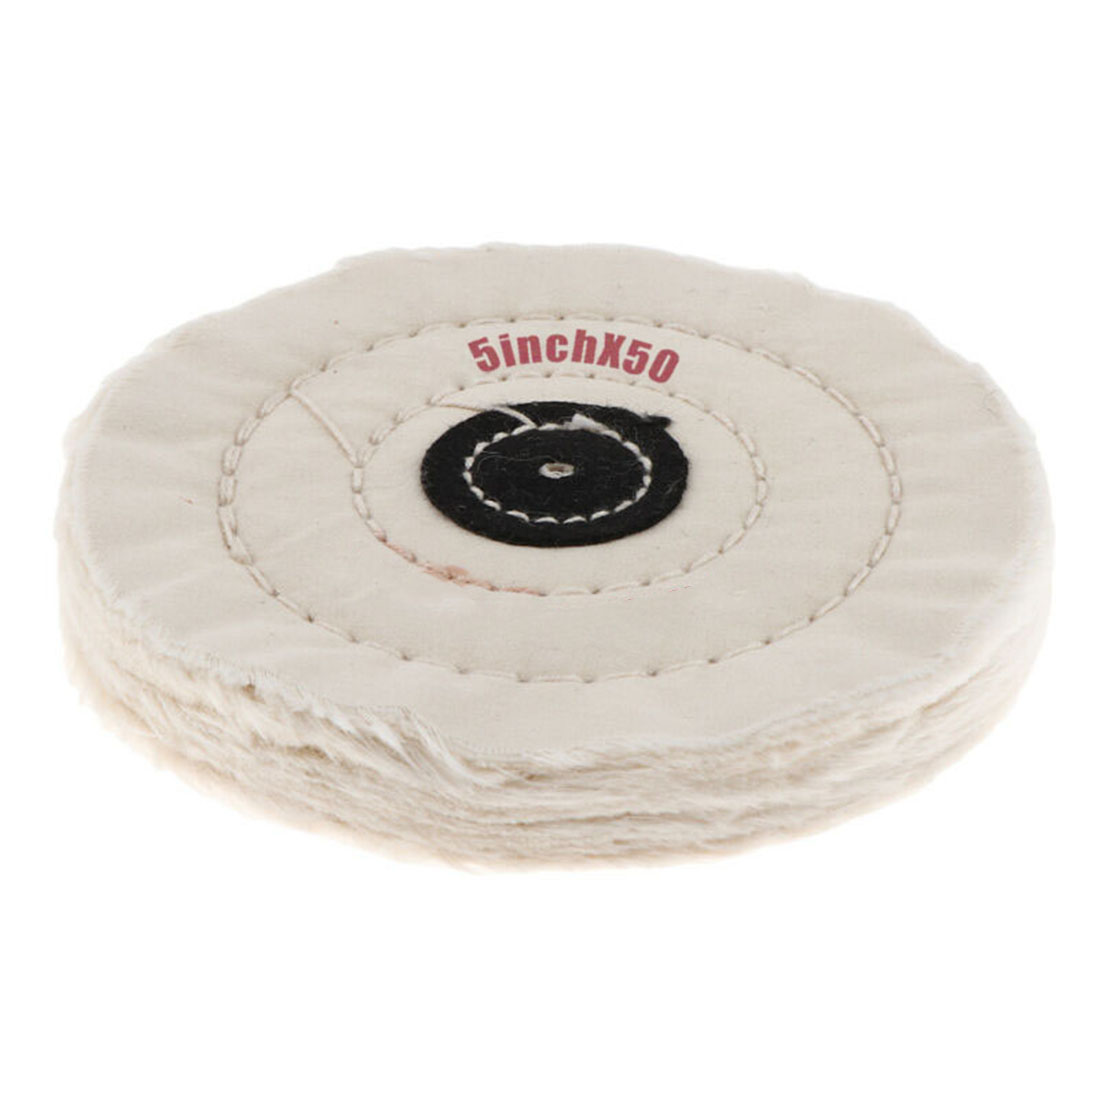 5inch 50 Layer Cotton Cloth Buffing Wheel Pad Polishing Jewelry Accessories Polishing Wheel 2020 Brand New And High Quality